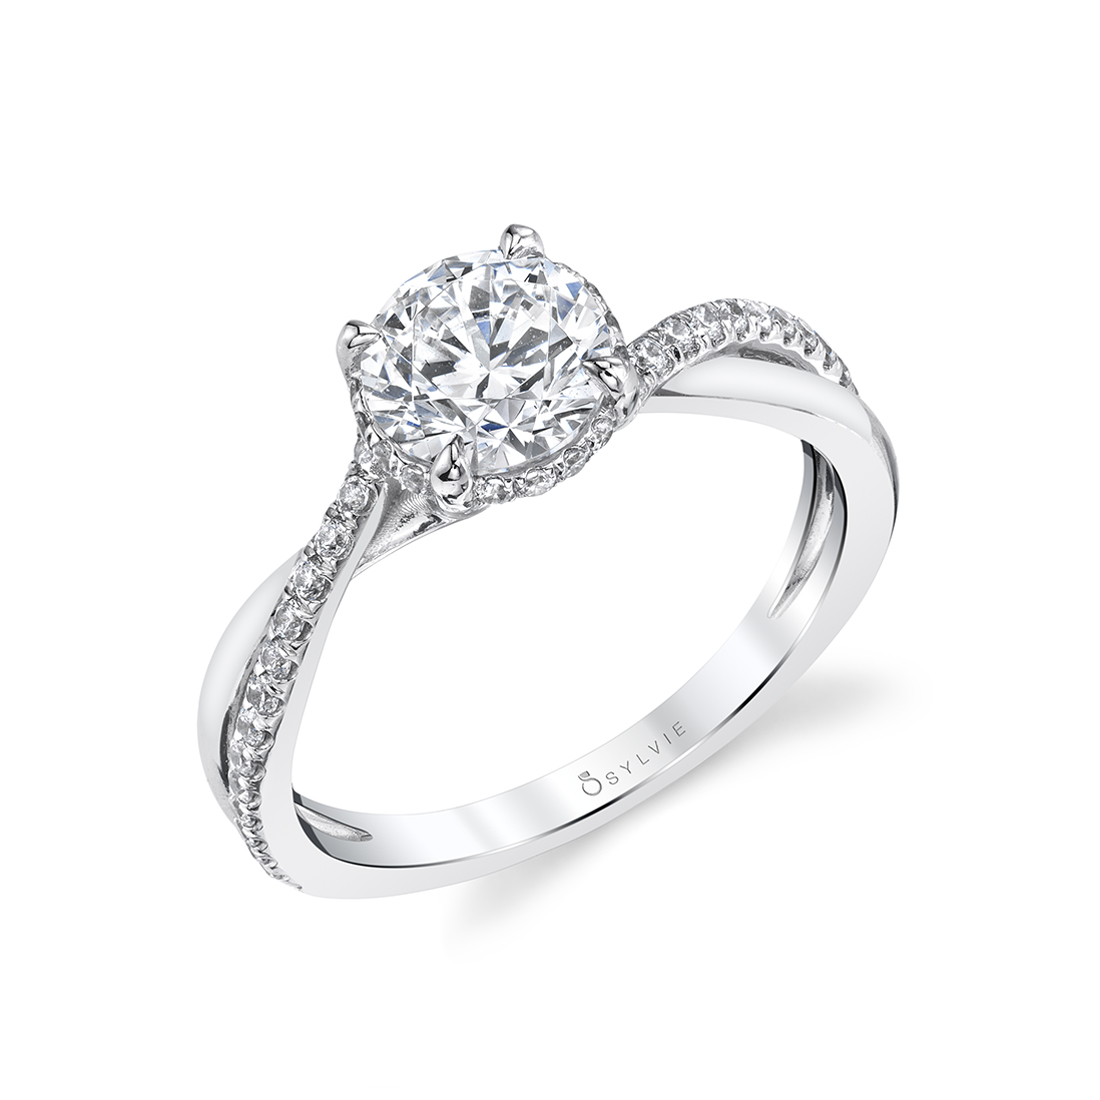 Spiral Engagement Ring with Hidden Halo in white gold - S1844 - Iliara